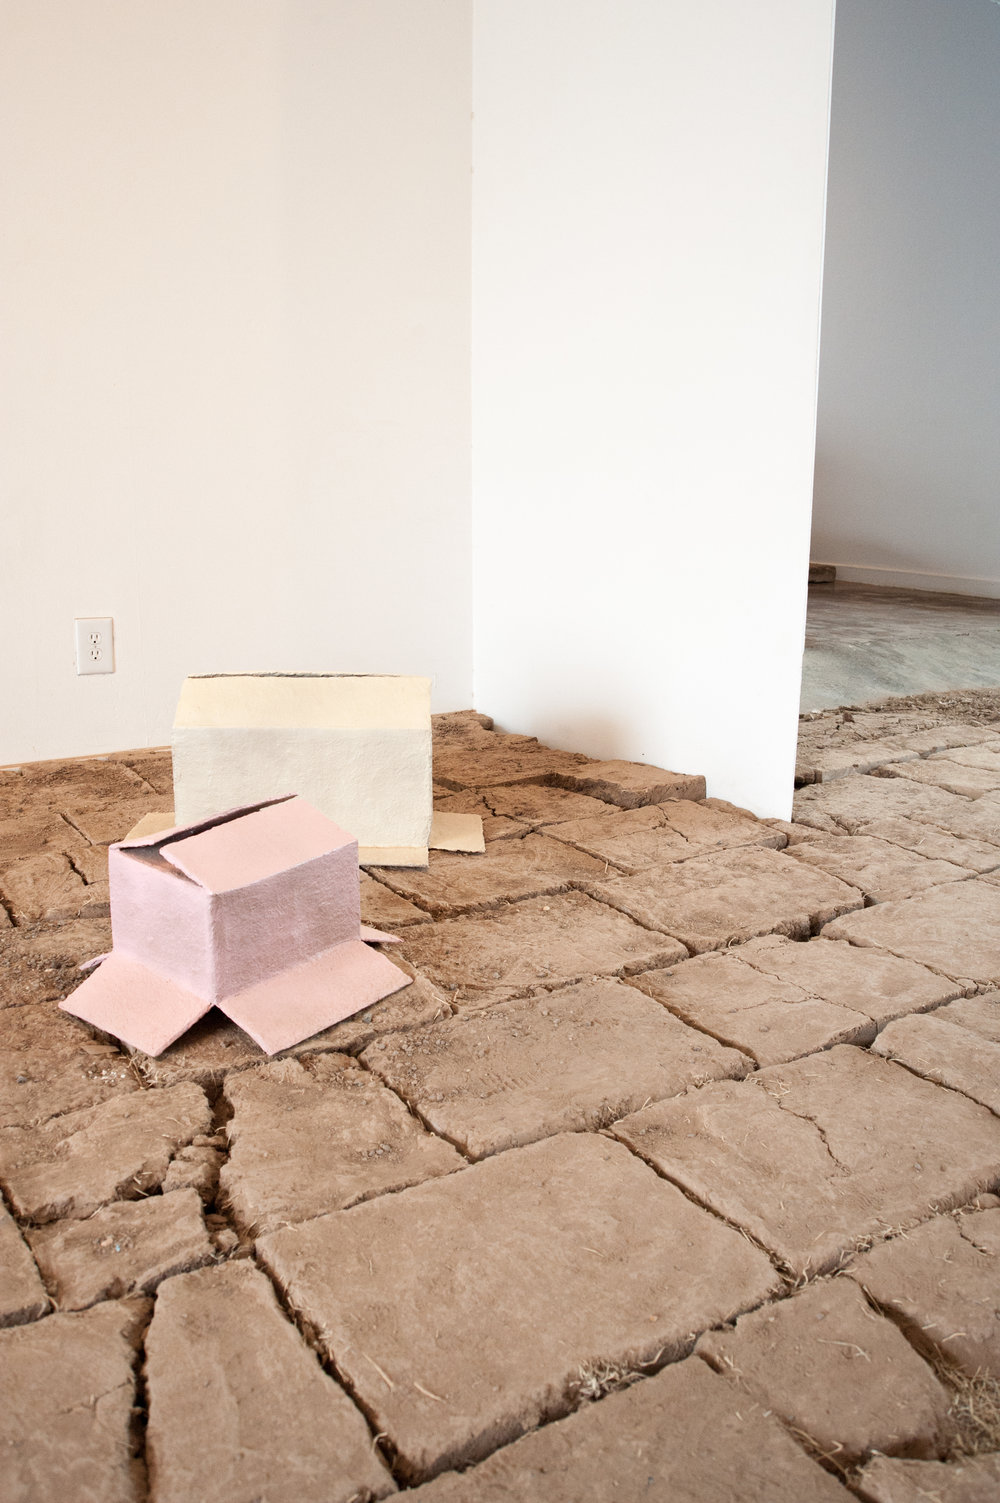 Installation view of TIERRA. SANGRE. ORO. © Emma Rogers for Collecteurs Magazine